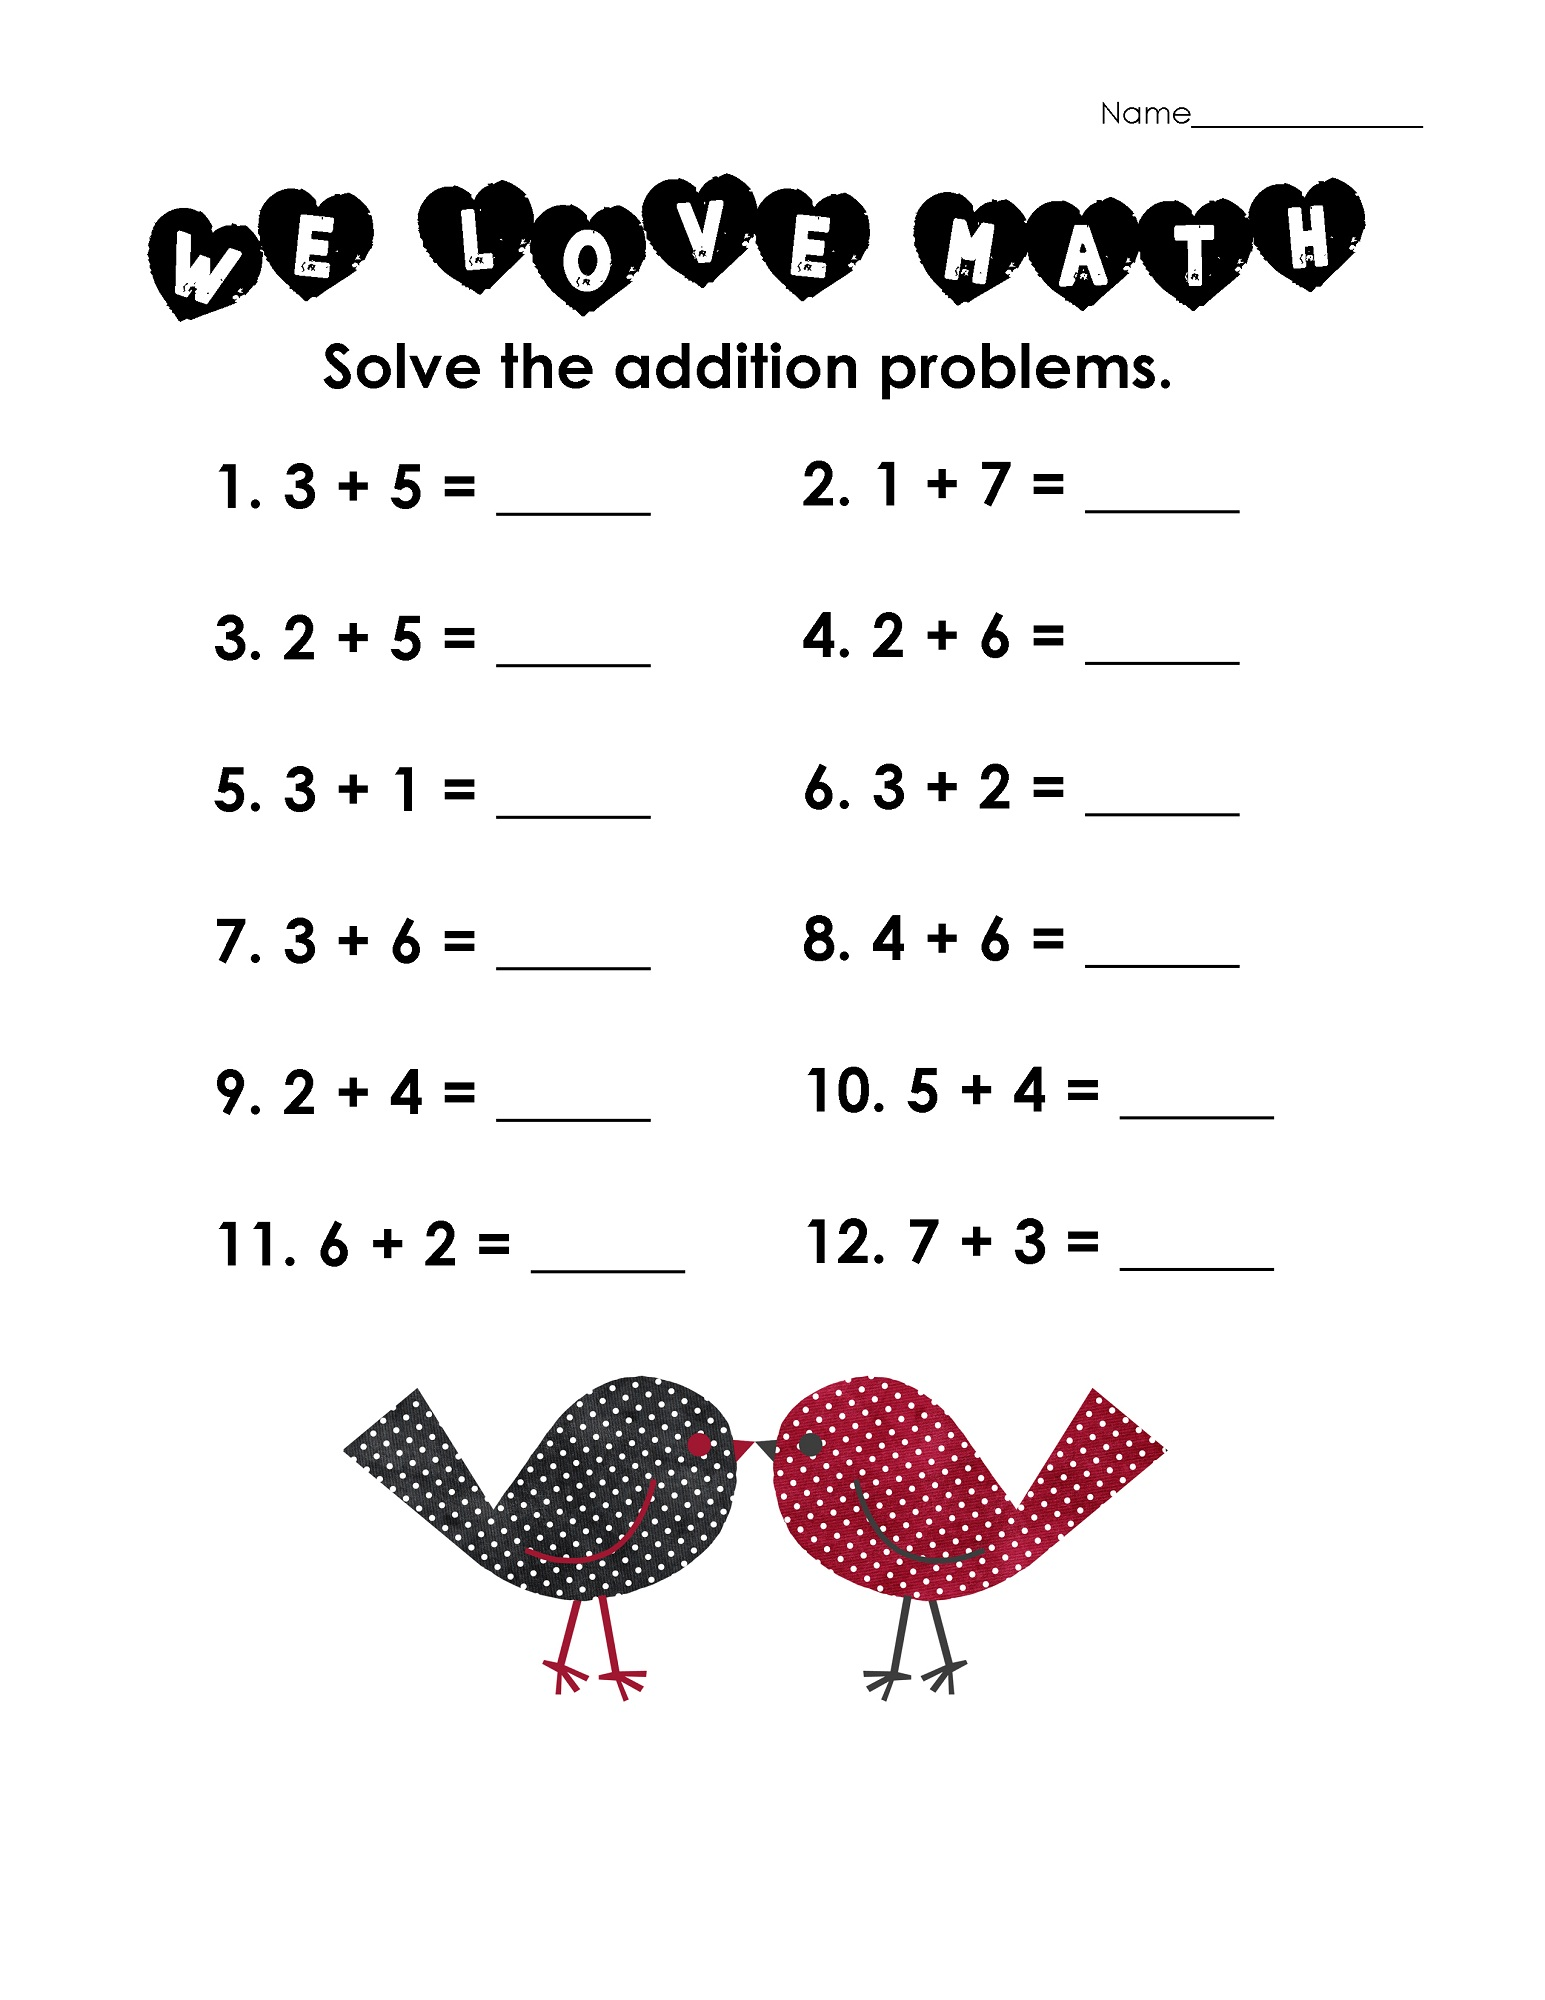 Letter Tt Worksheets